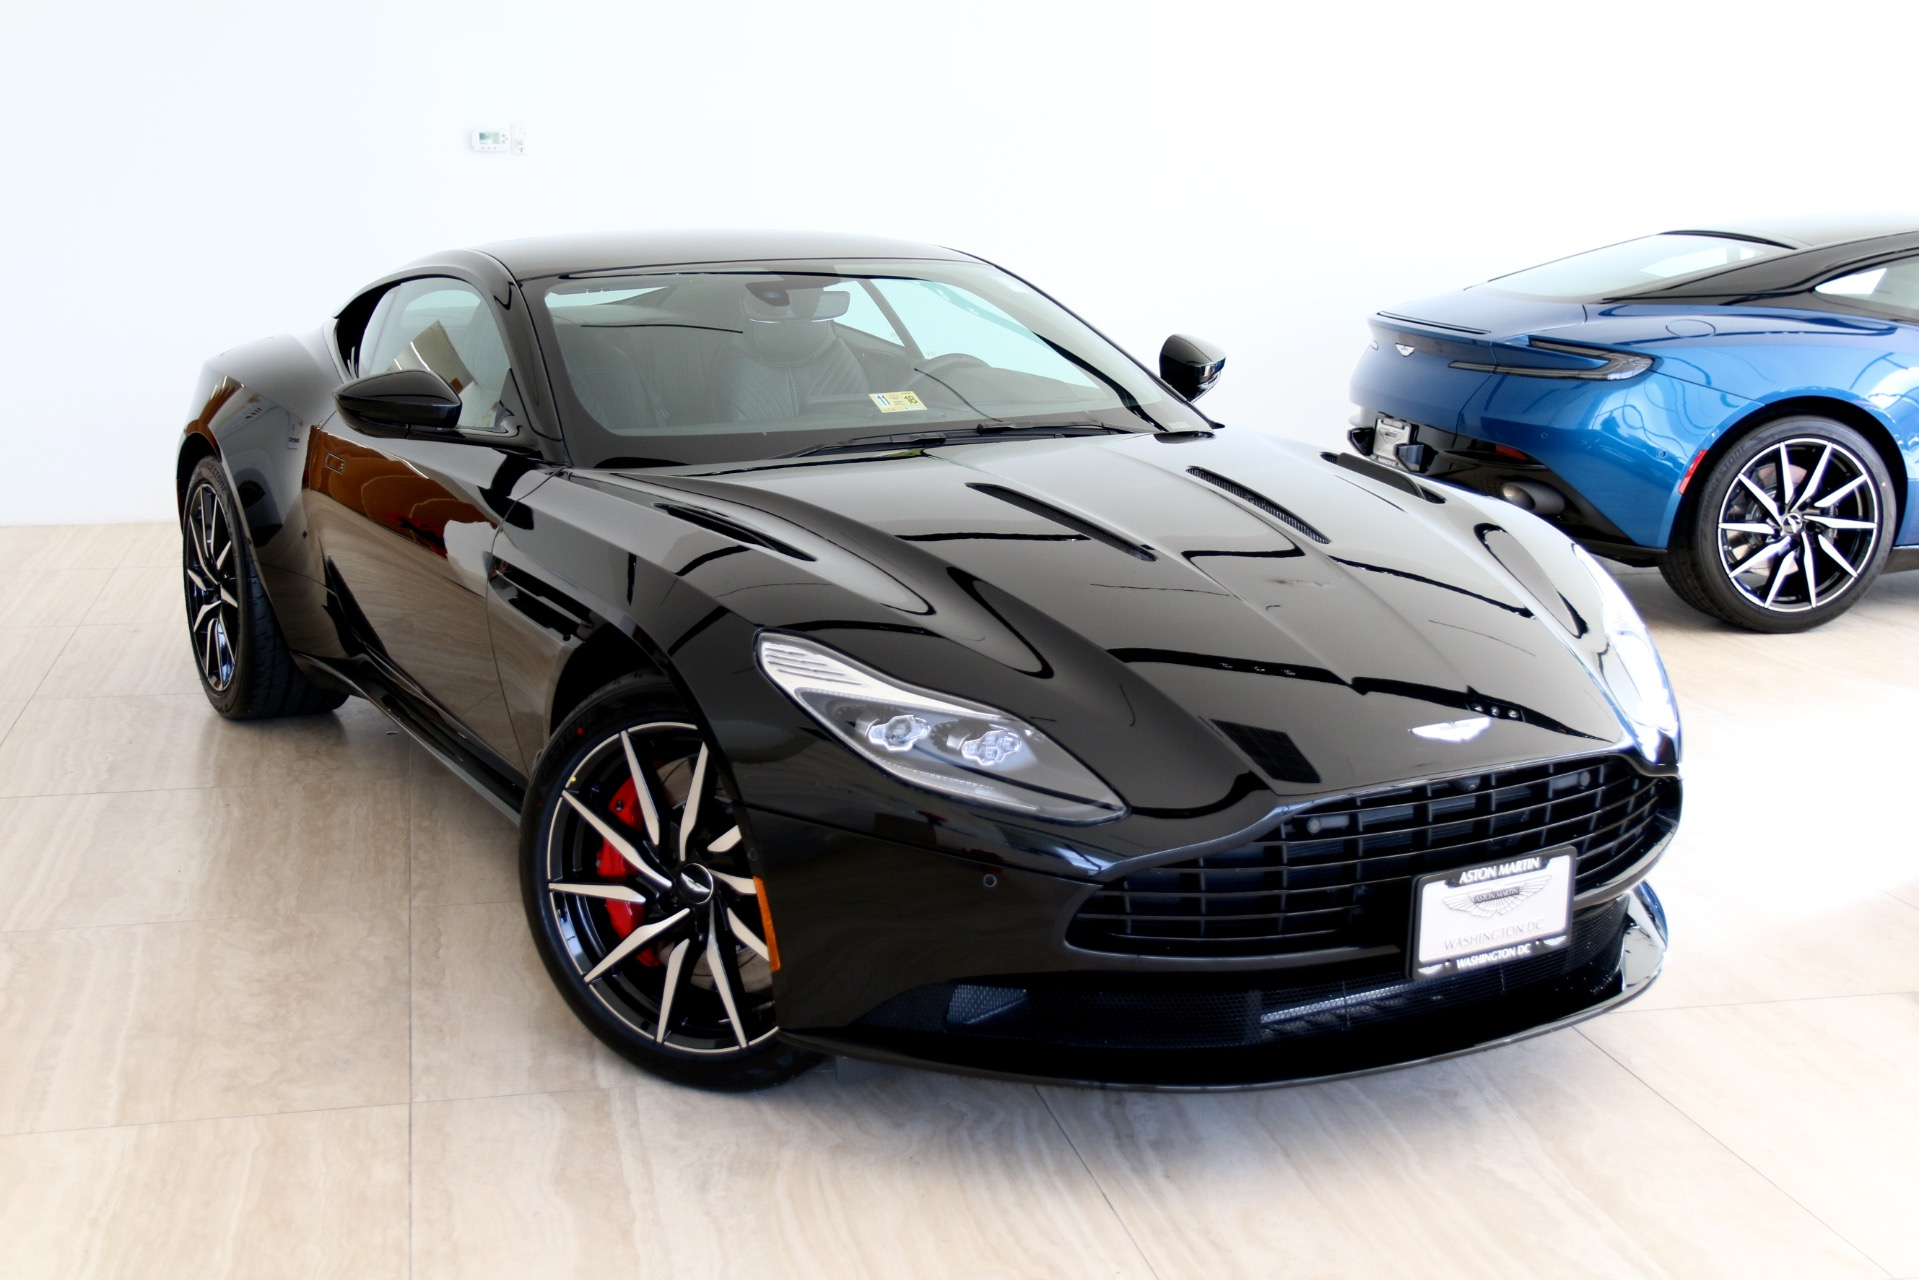 2018 aston martin db11 v12 stock 8l03667 for sale near vienna va va aston martin dealer for. Black Bedroom Furniture Sets. Home Design Ideas